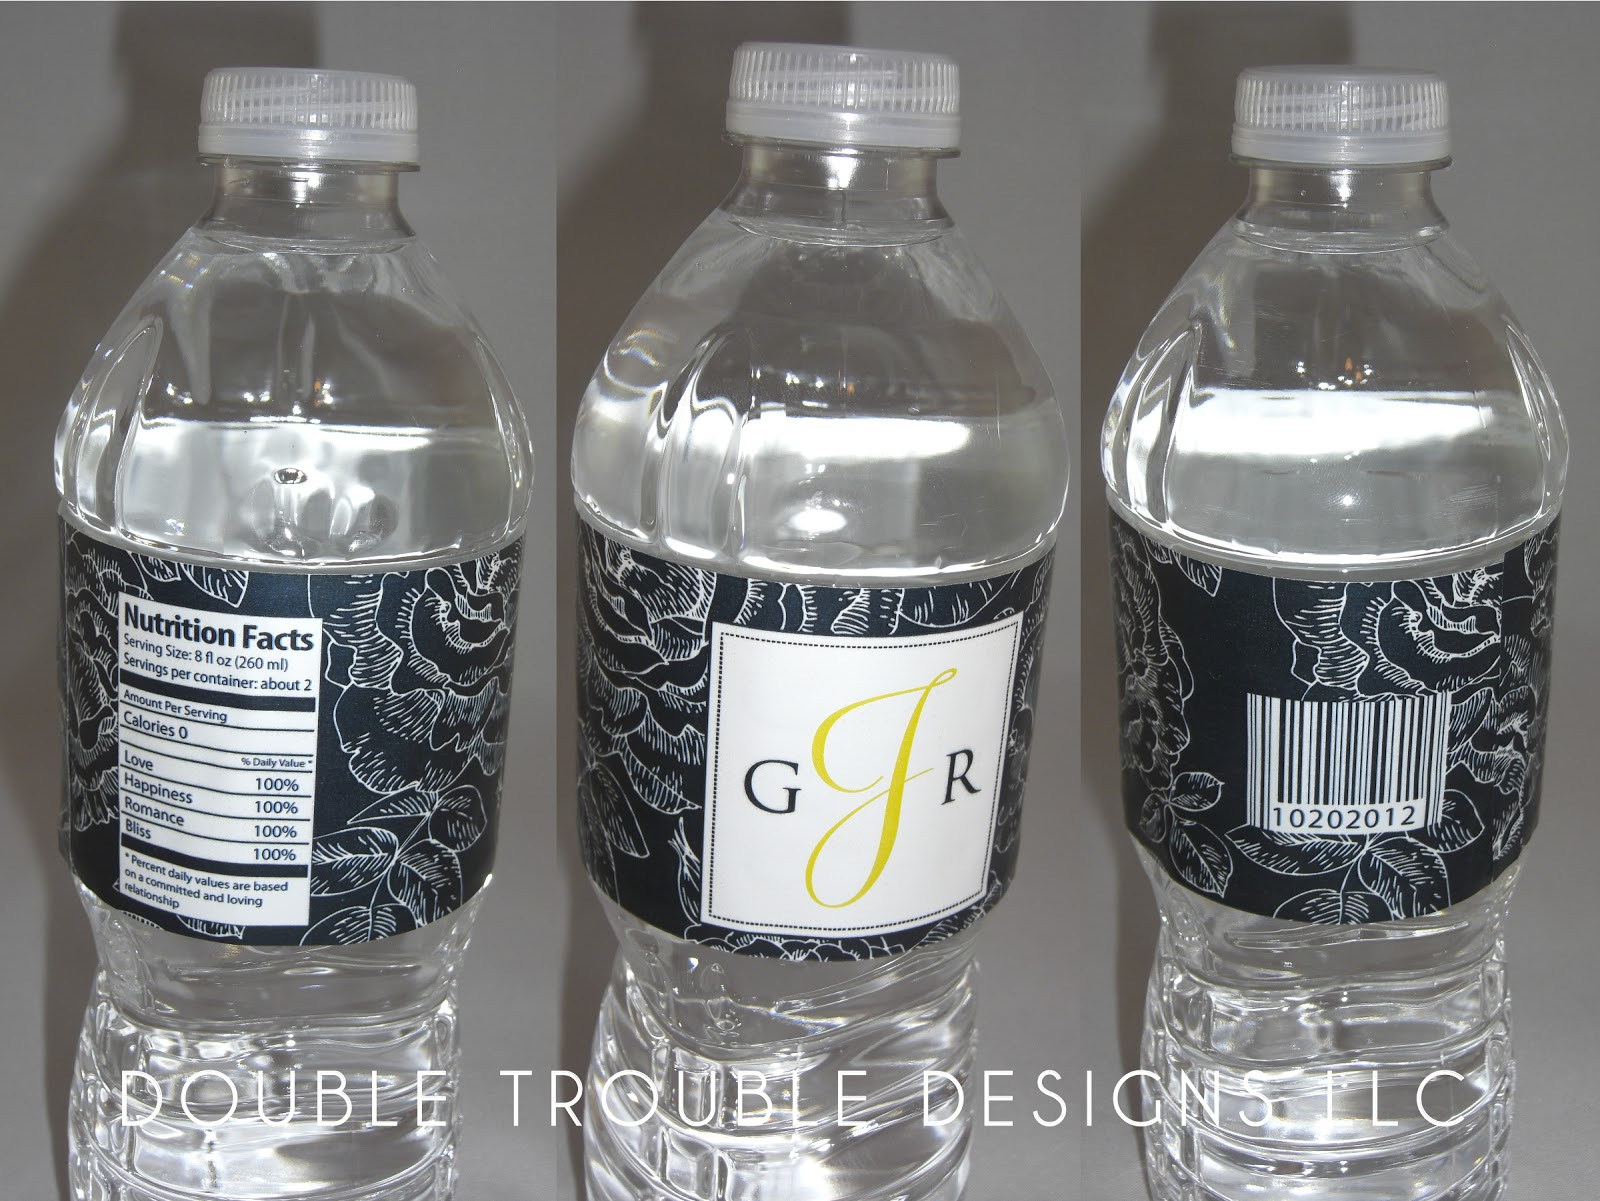 Trouble with bottled water